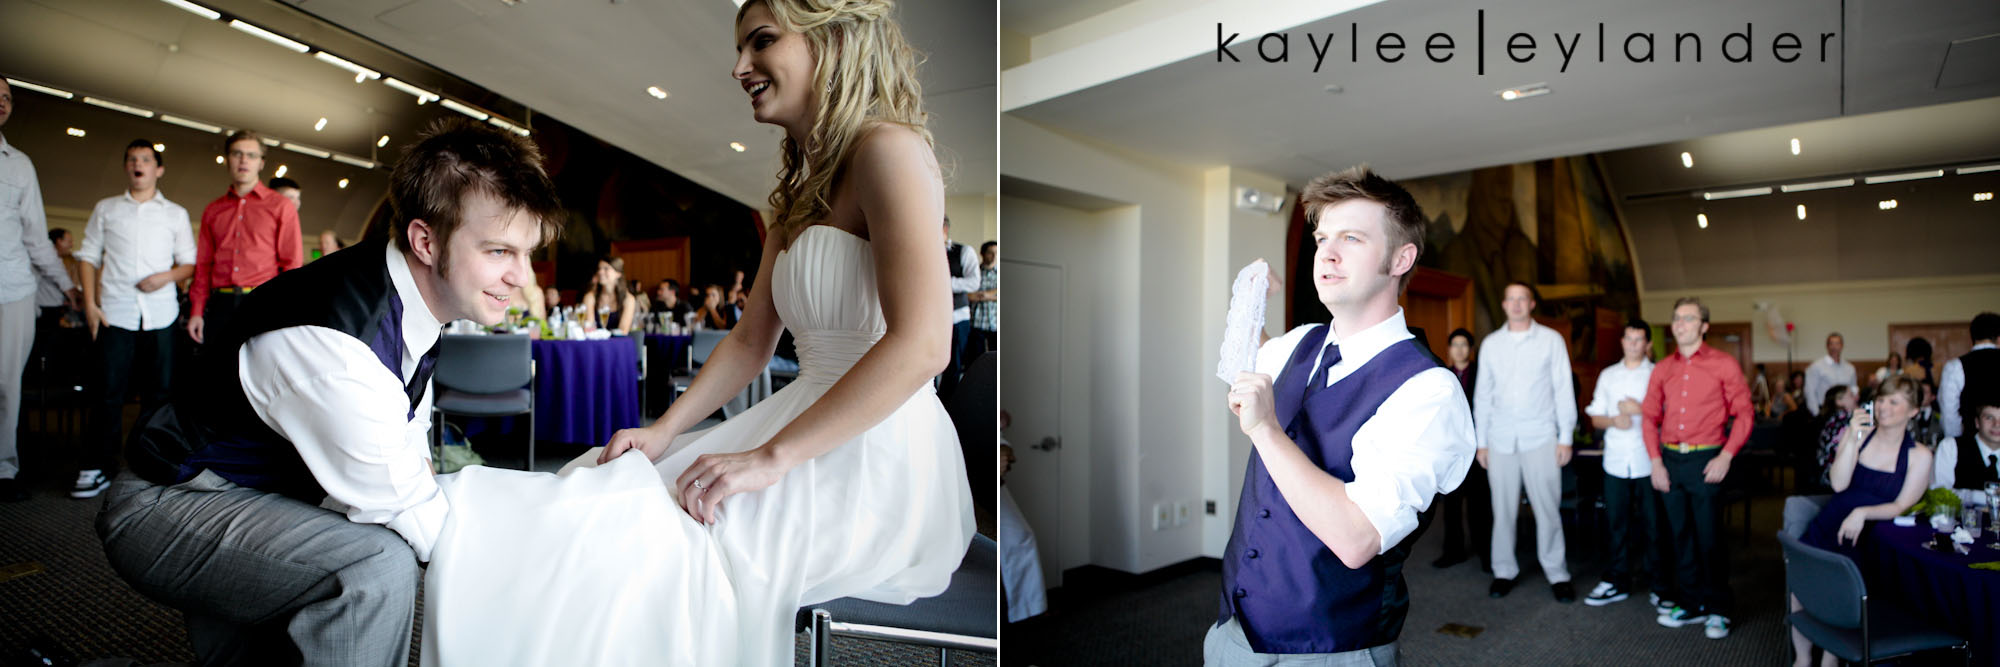 0630 Everett Train Station Wedding | Grey Tuxes & Green Flowers! | Seattle Wedding Photographers